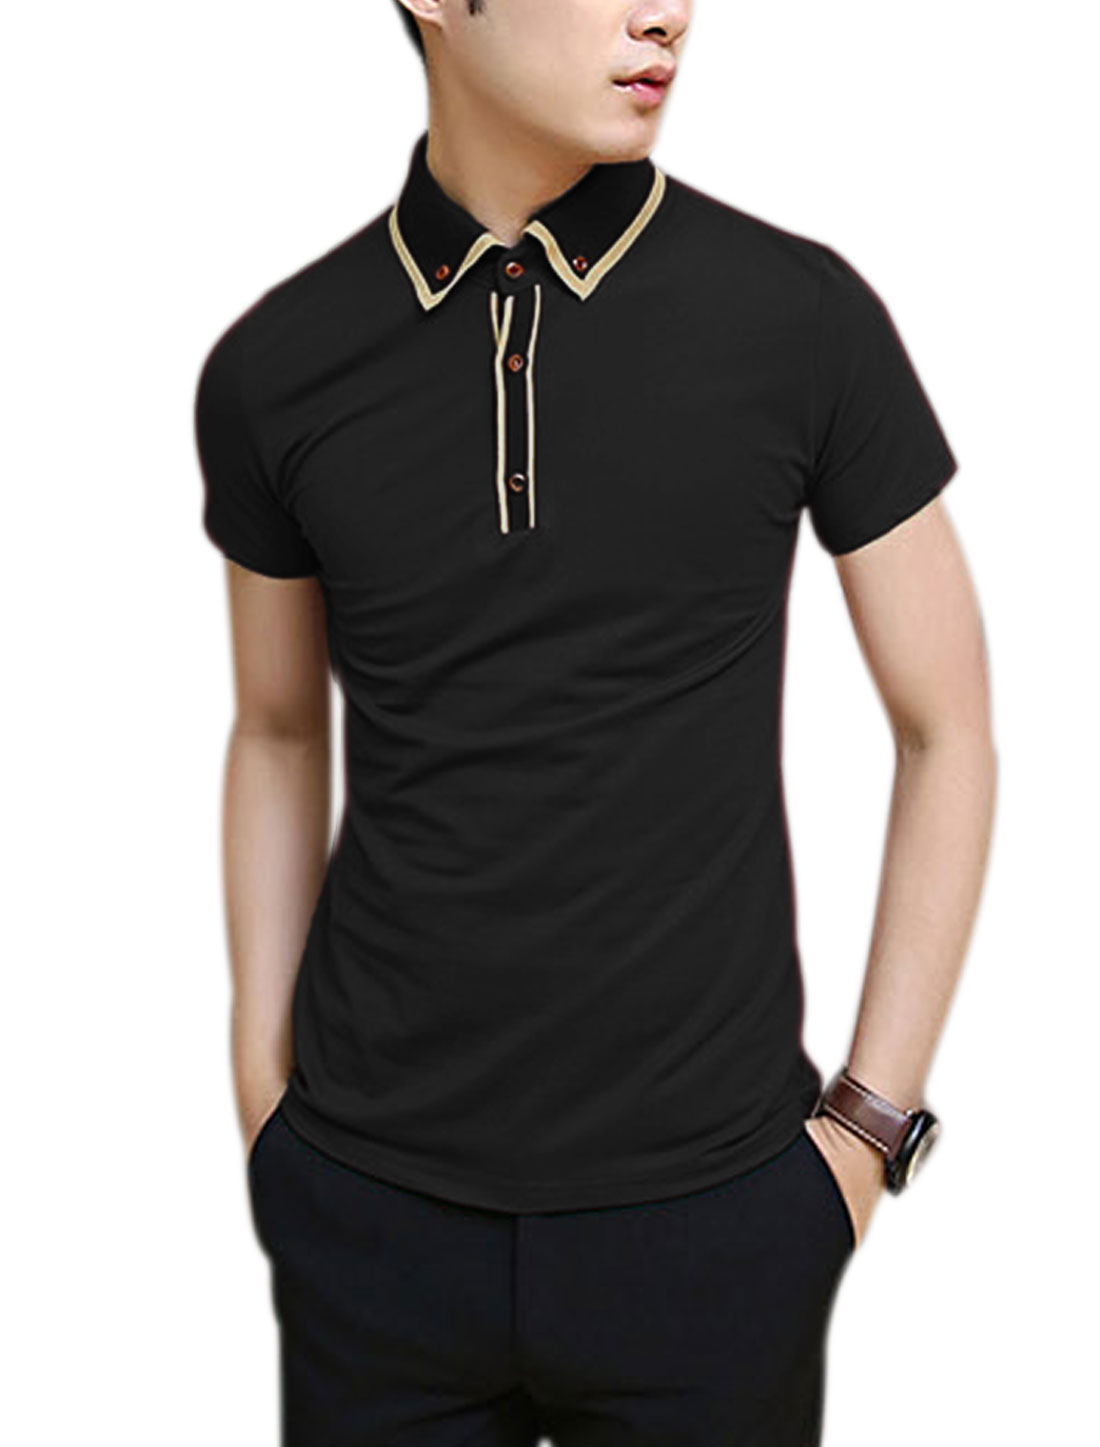 Men Rib Knit Point Collar 1/4 Placket Casual Button Down Polo Shirt Black M